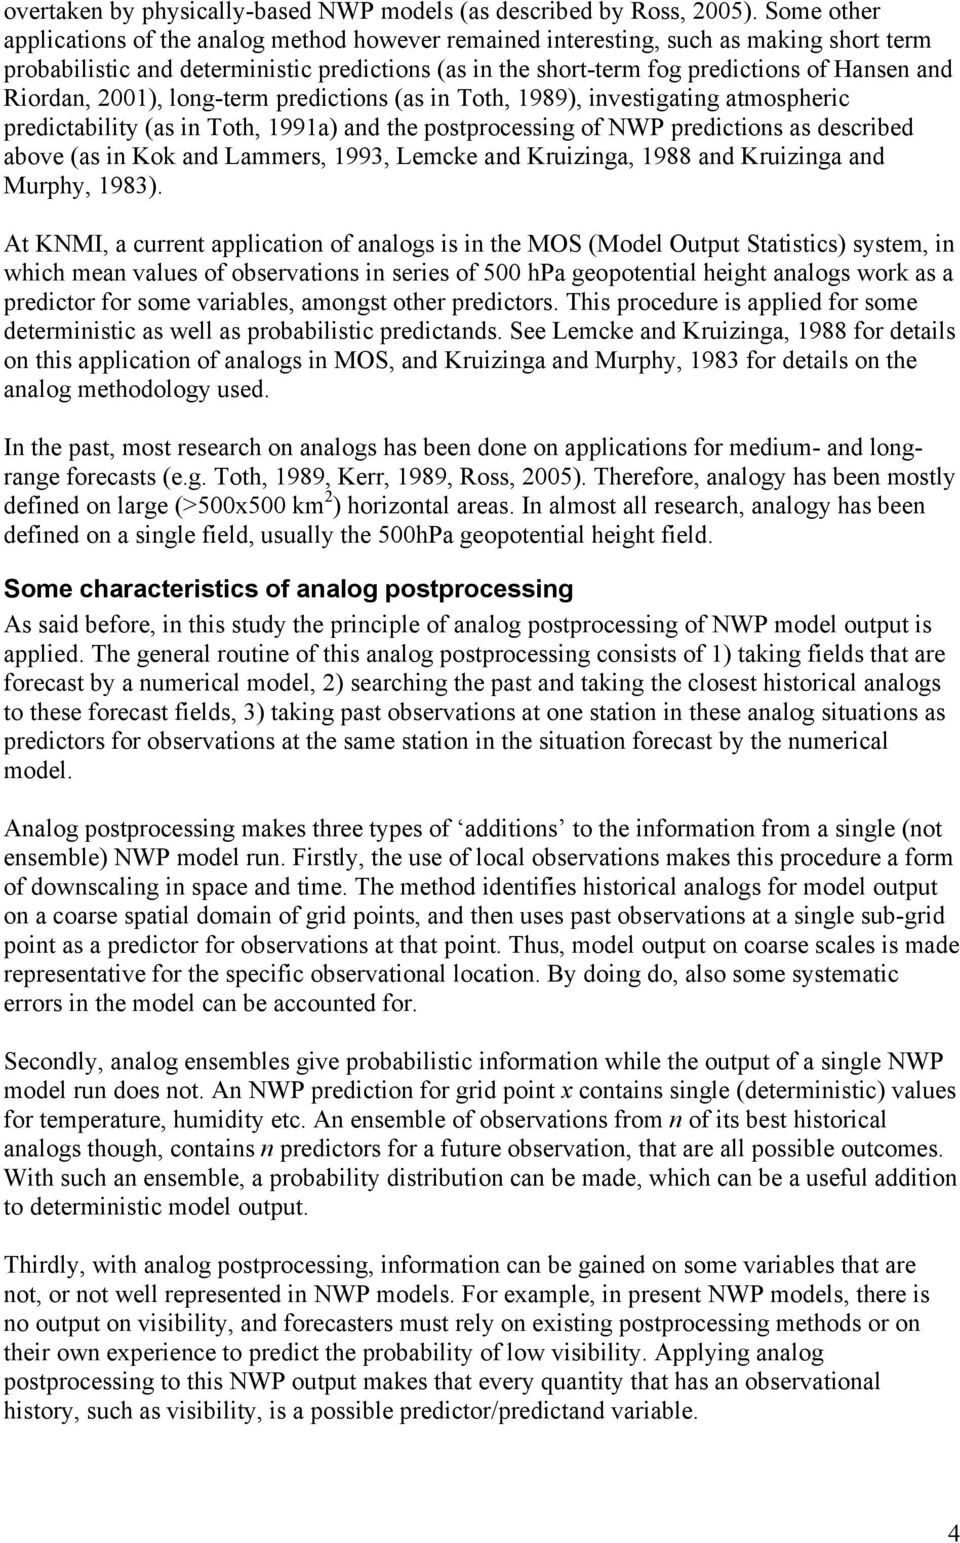 Riordan, 2001), long-term predictions (as in Toth, 1989), investigating atmospheric predictability (as in Toth, 1991a) and the postprocessing of NWP predictions as described above (as in Kok and